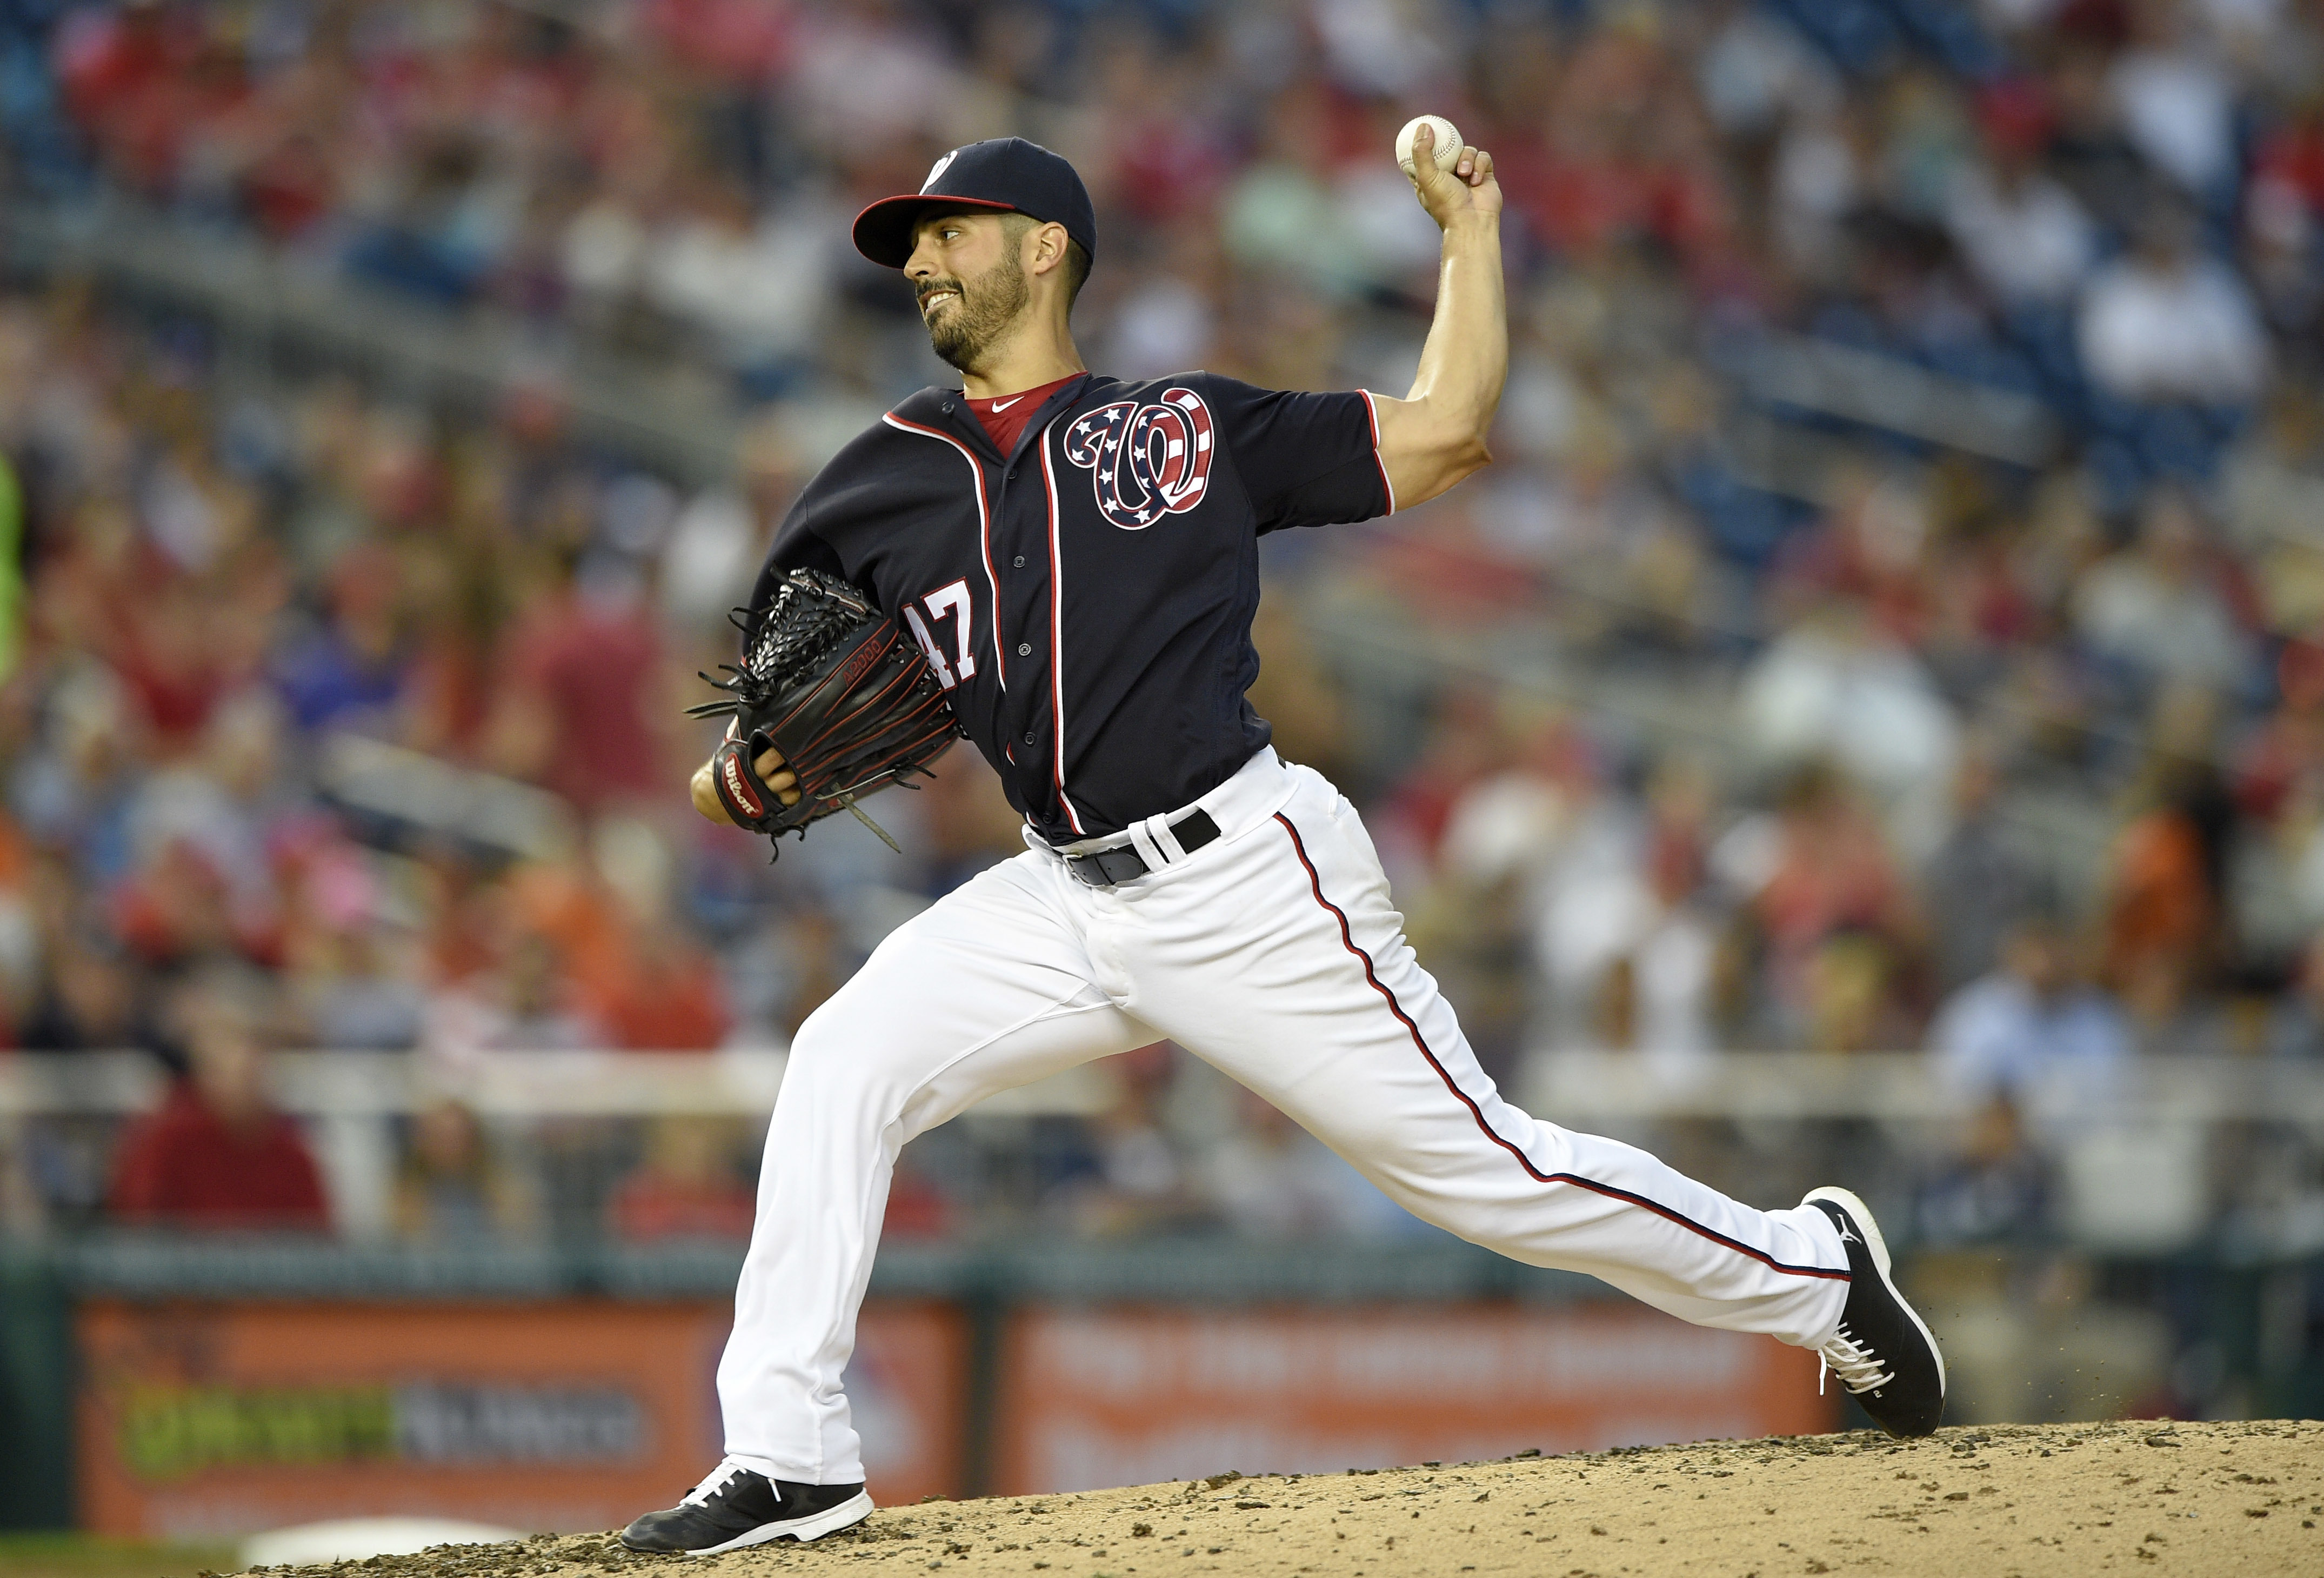 Washington Nationals starting pitcher Gio Gonzalez delivers a pitch during the fourth inning of a baseball game against the San Francisco Giants, Friday, Aug. 5, 2016, in Washington. (AP Photo/Nick Wass)